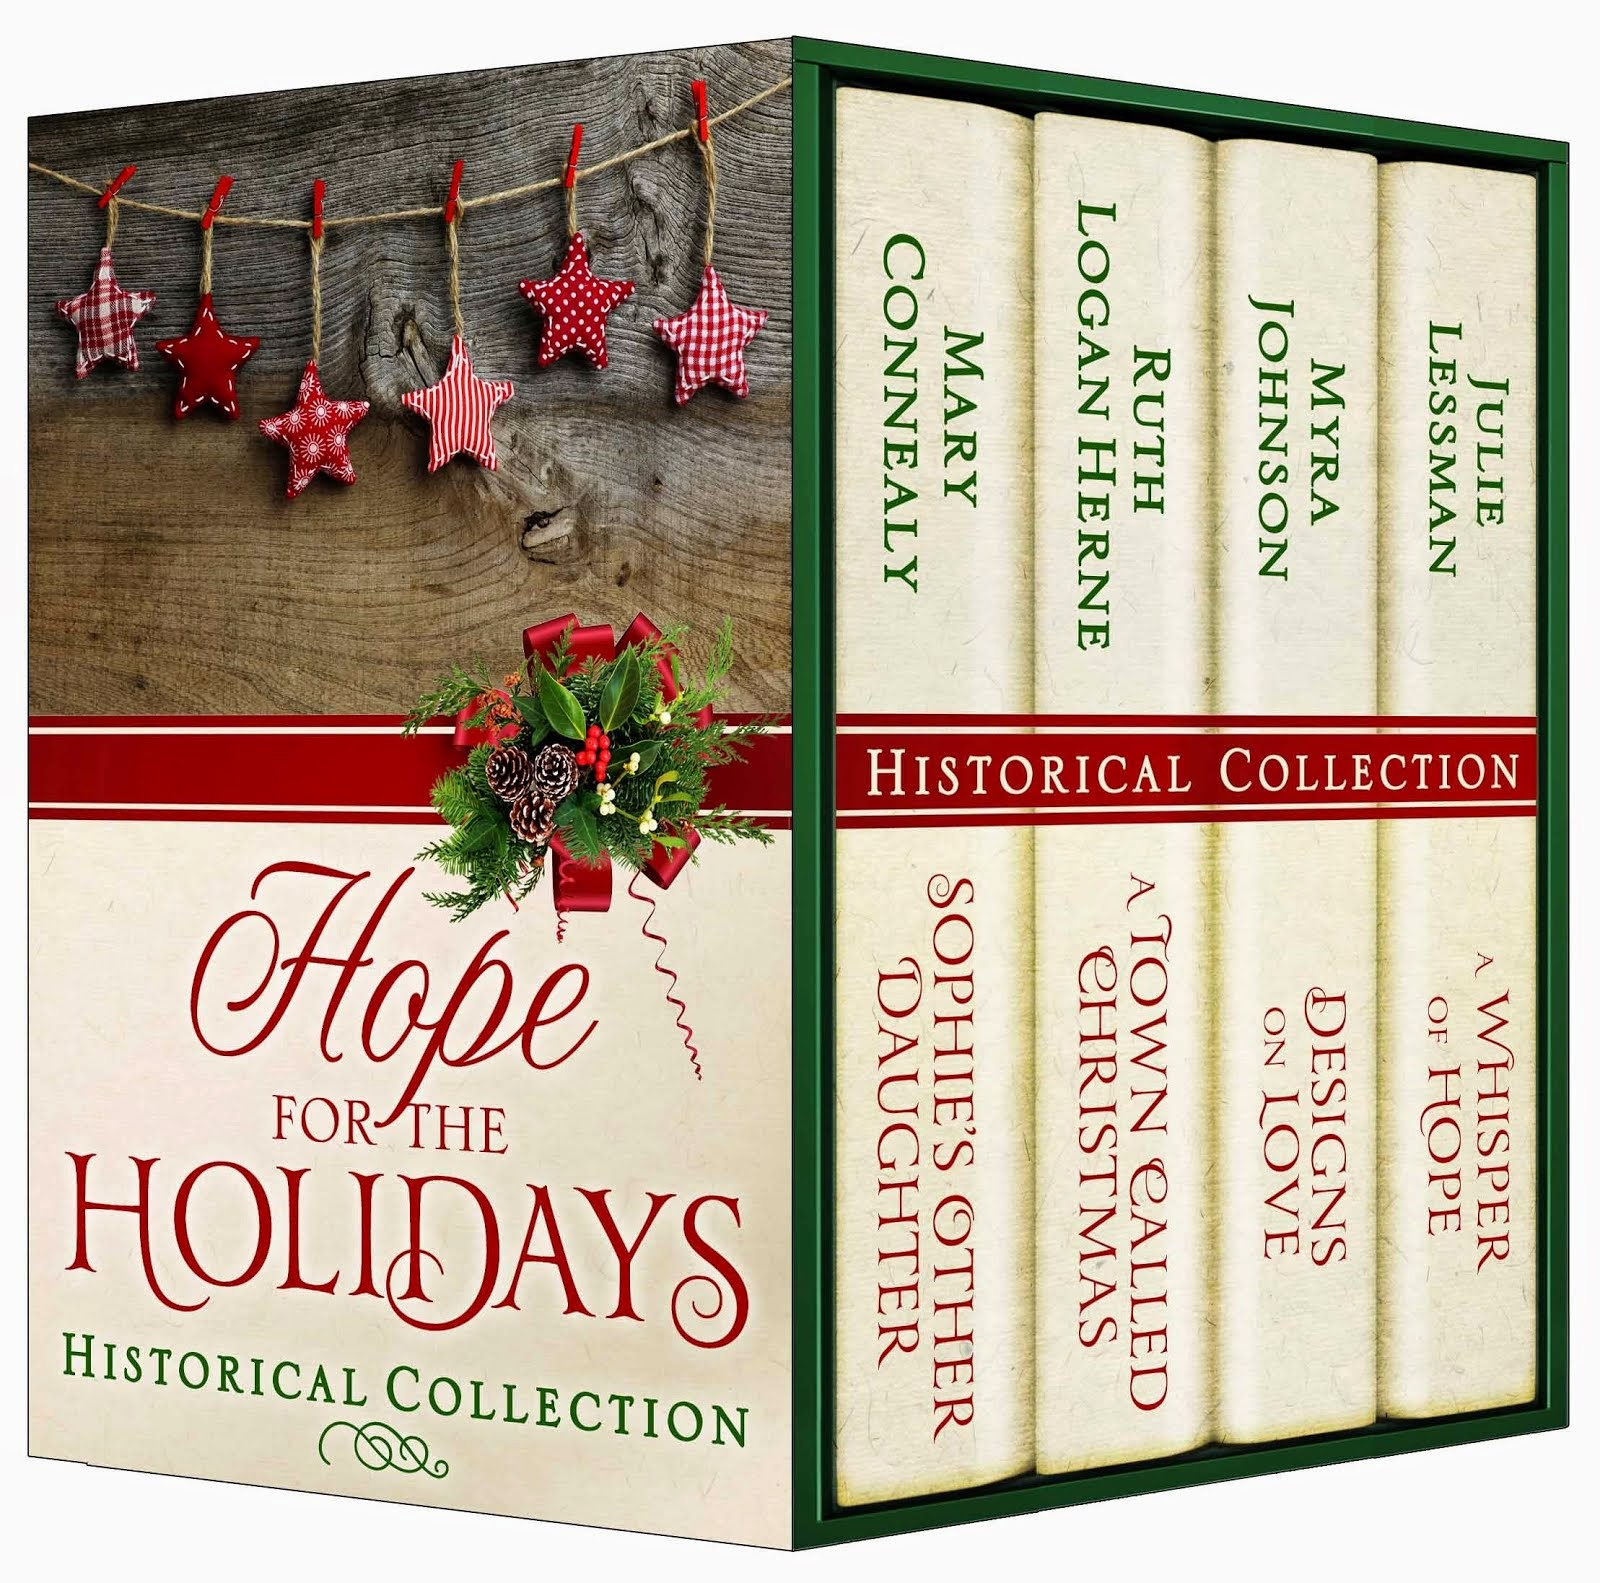 Hope for the Holidays Historical Collection